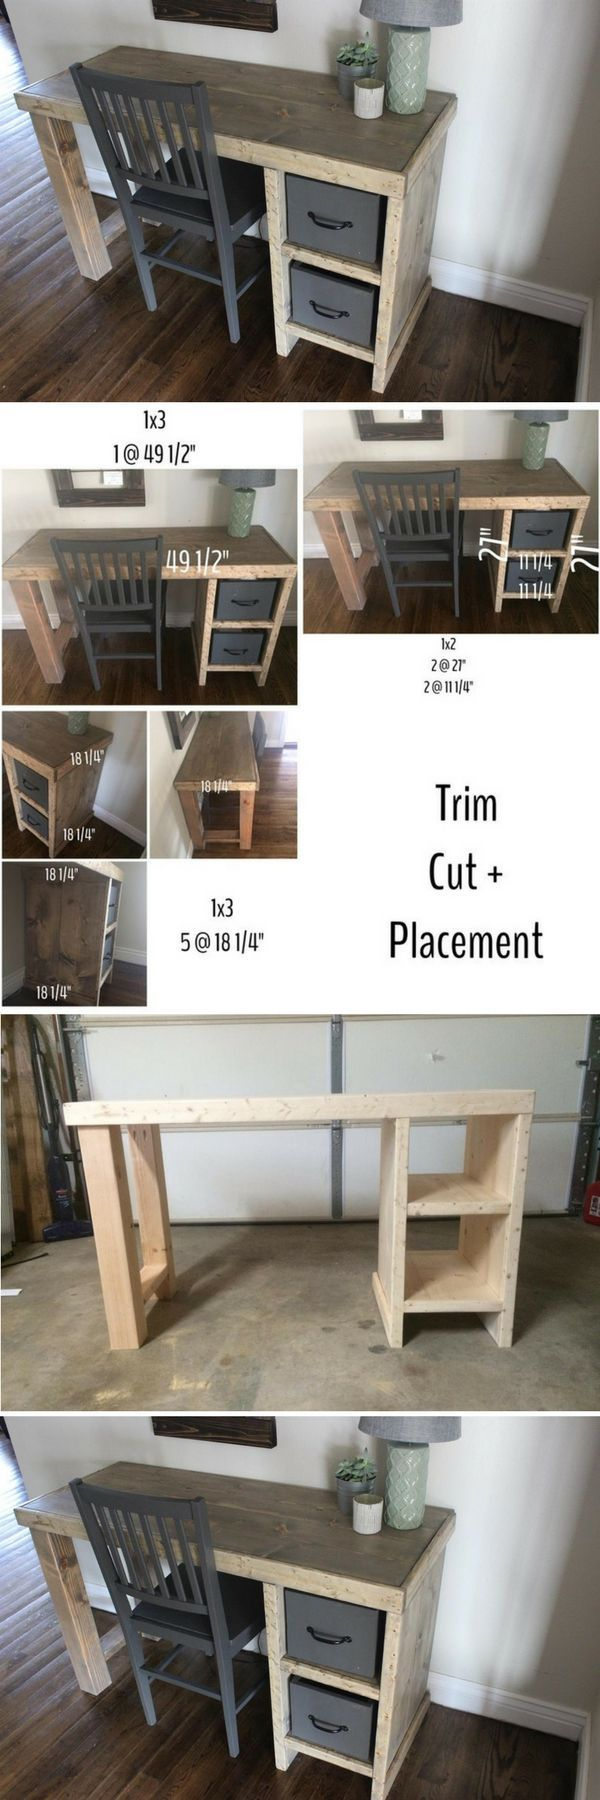 Do It Yourself Home Design: Diy Desk Plans Simple How To Build Tutorial, For Home